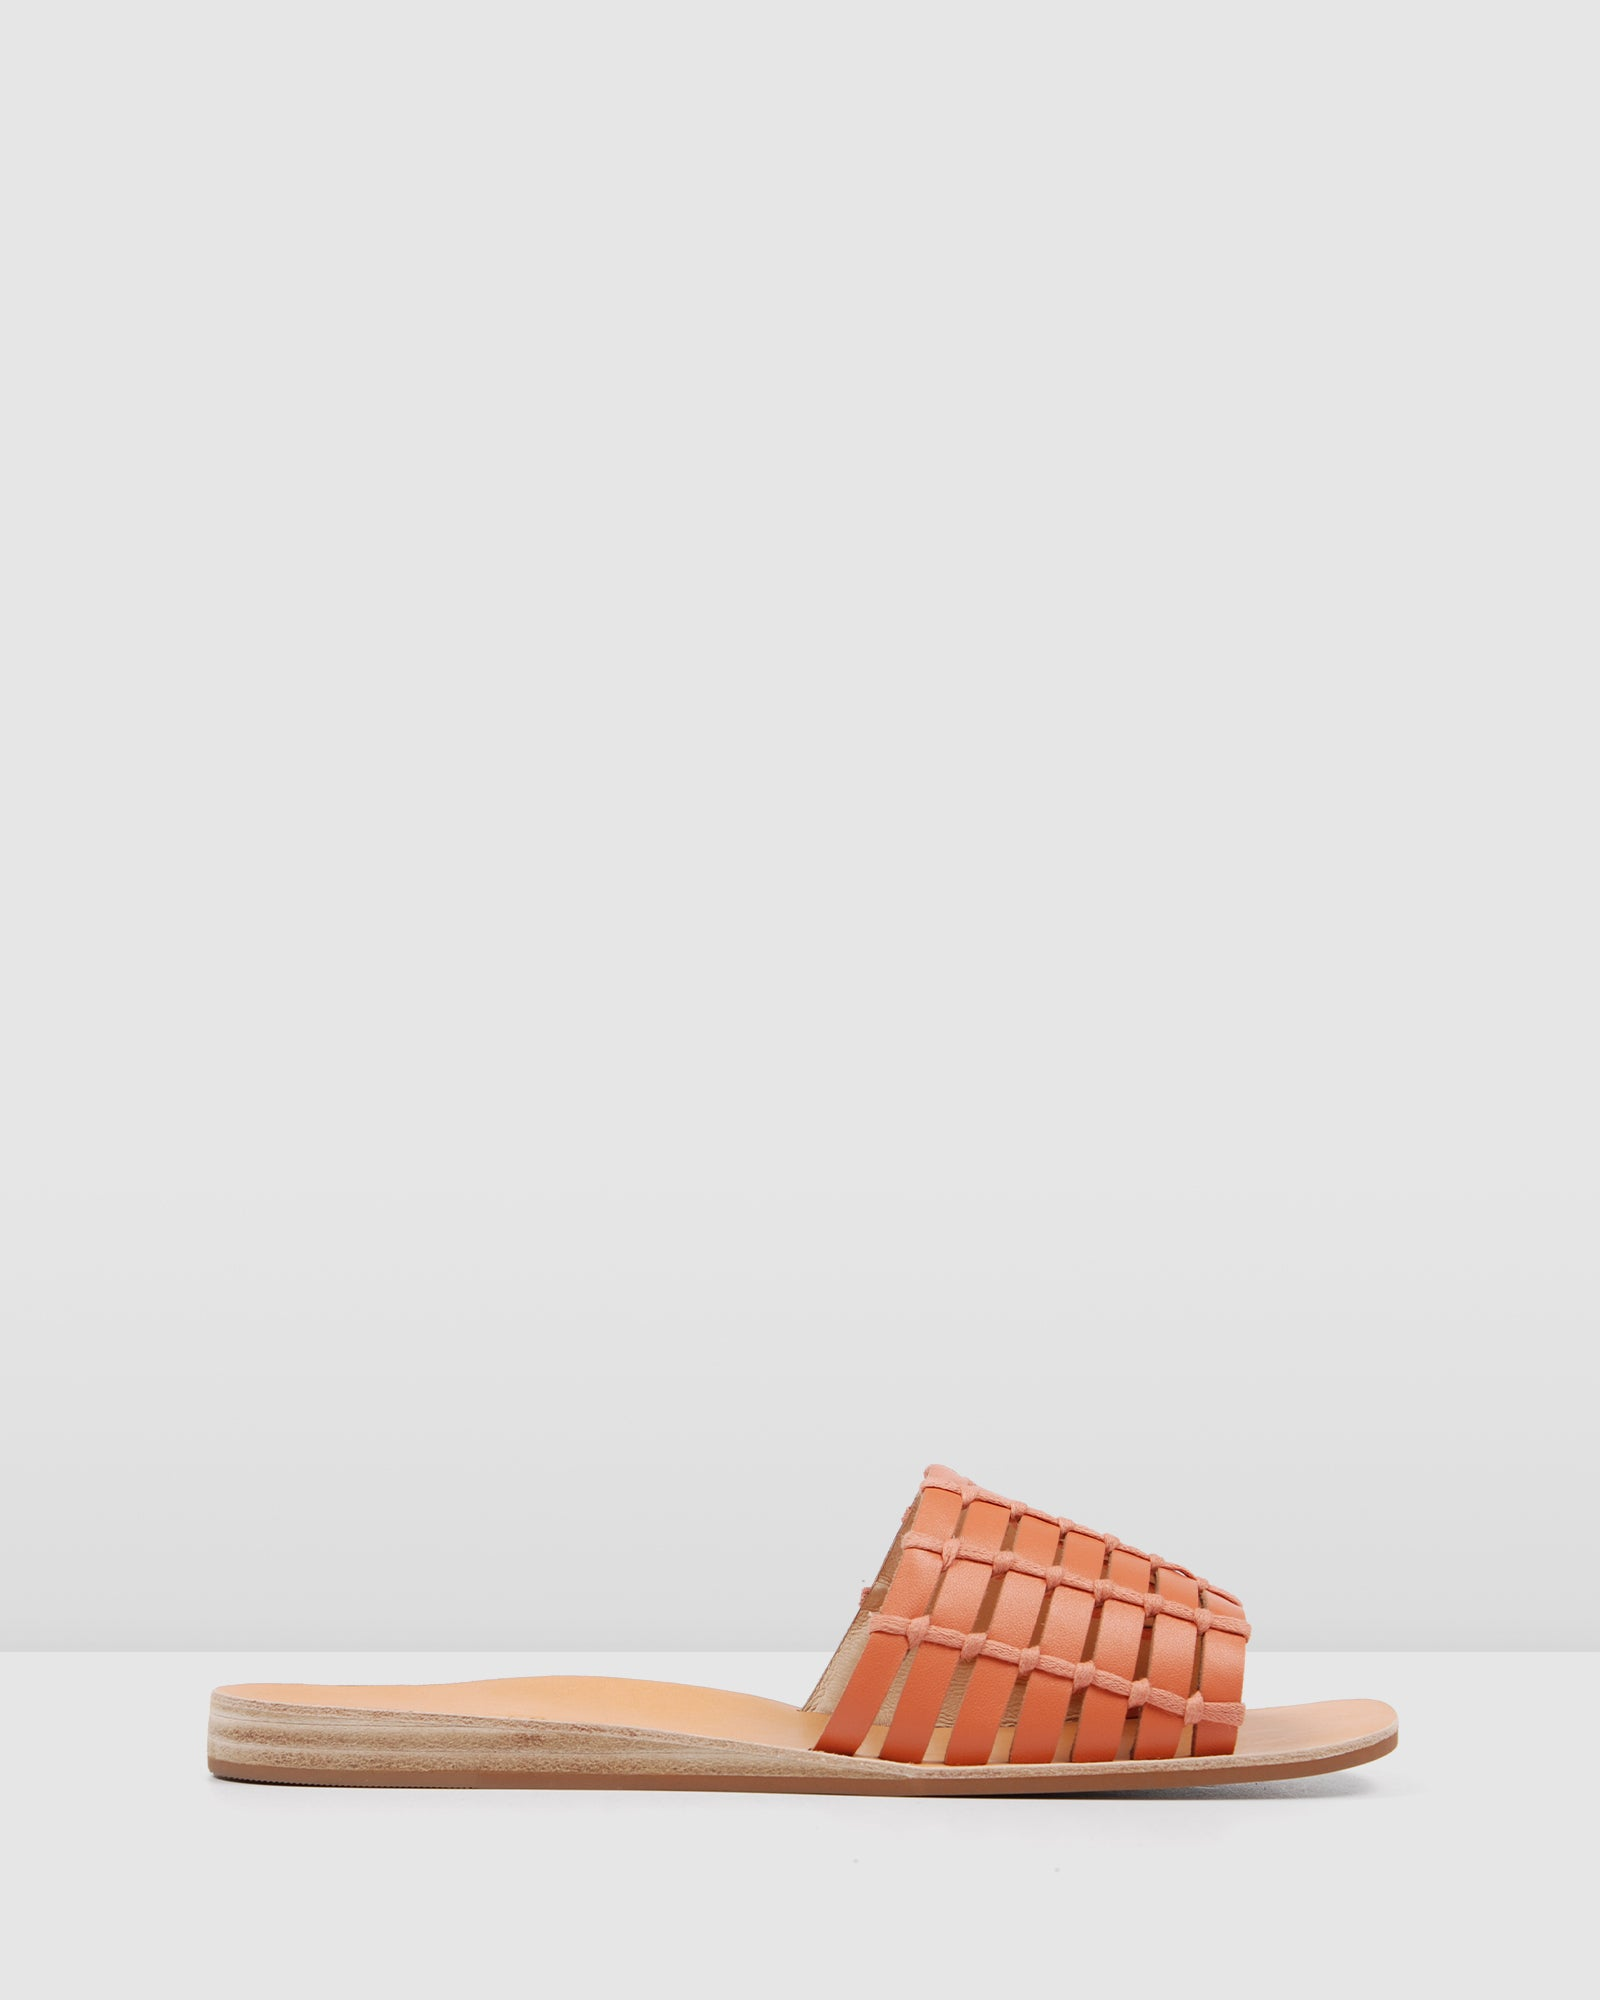 Details about NEW Jo Mercer Ava Flat Wedge Slides Coral Leather Sandals